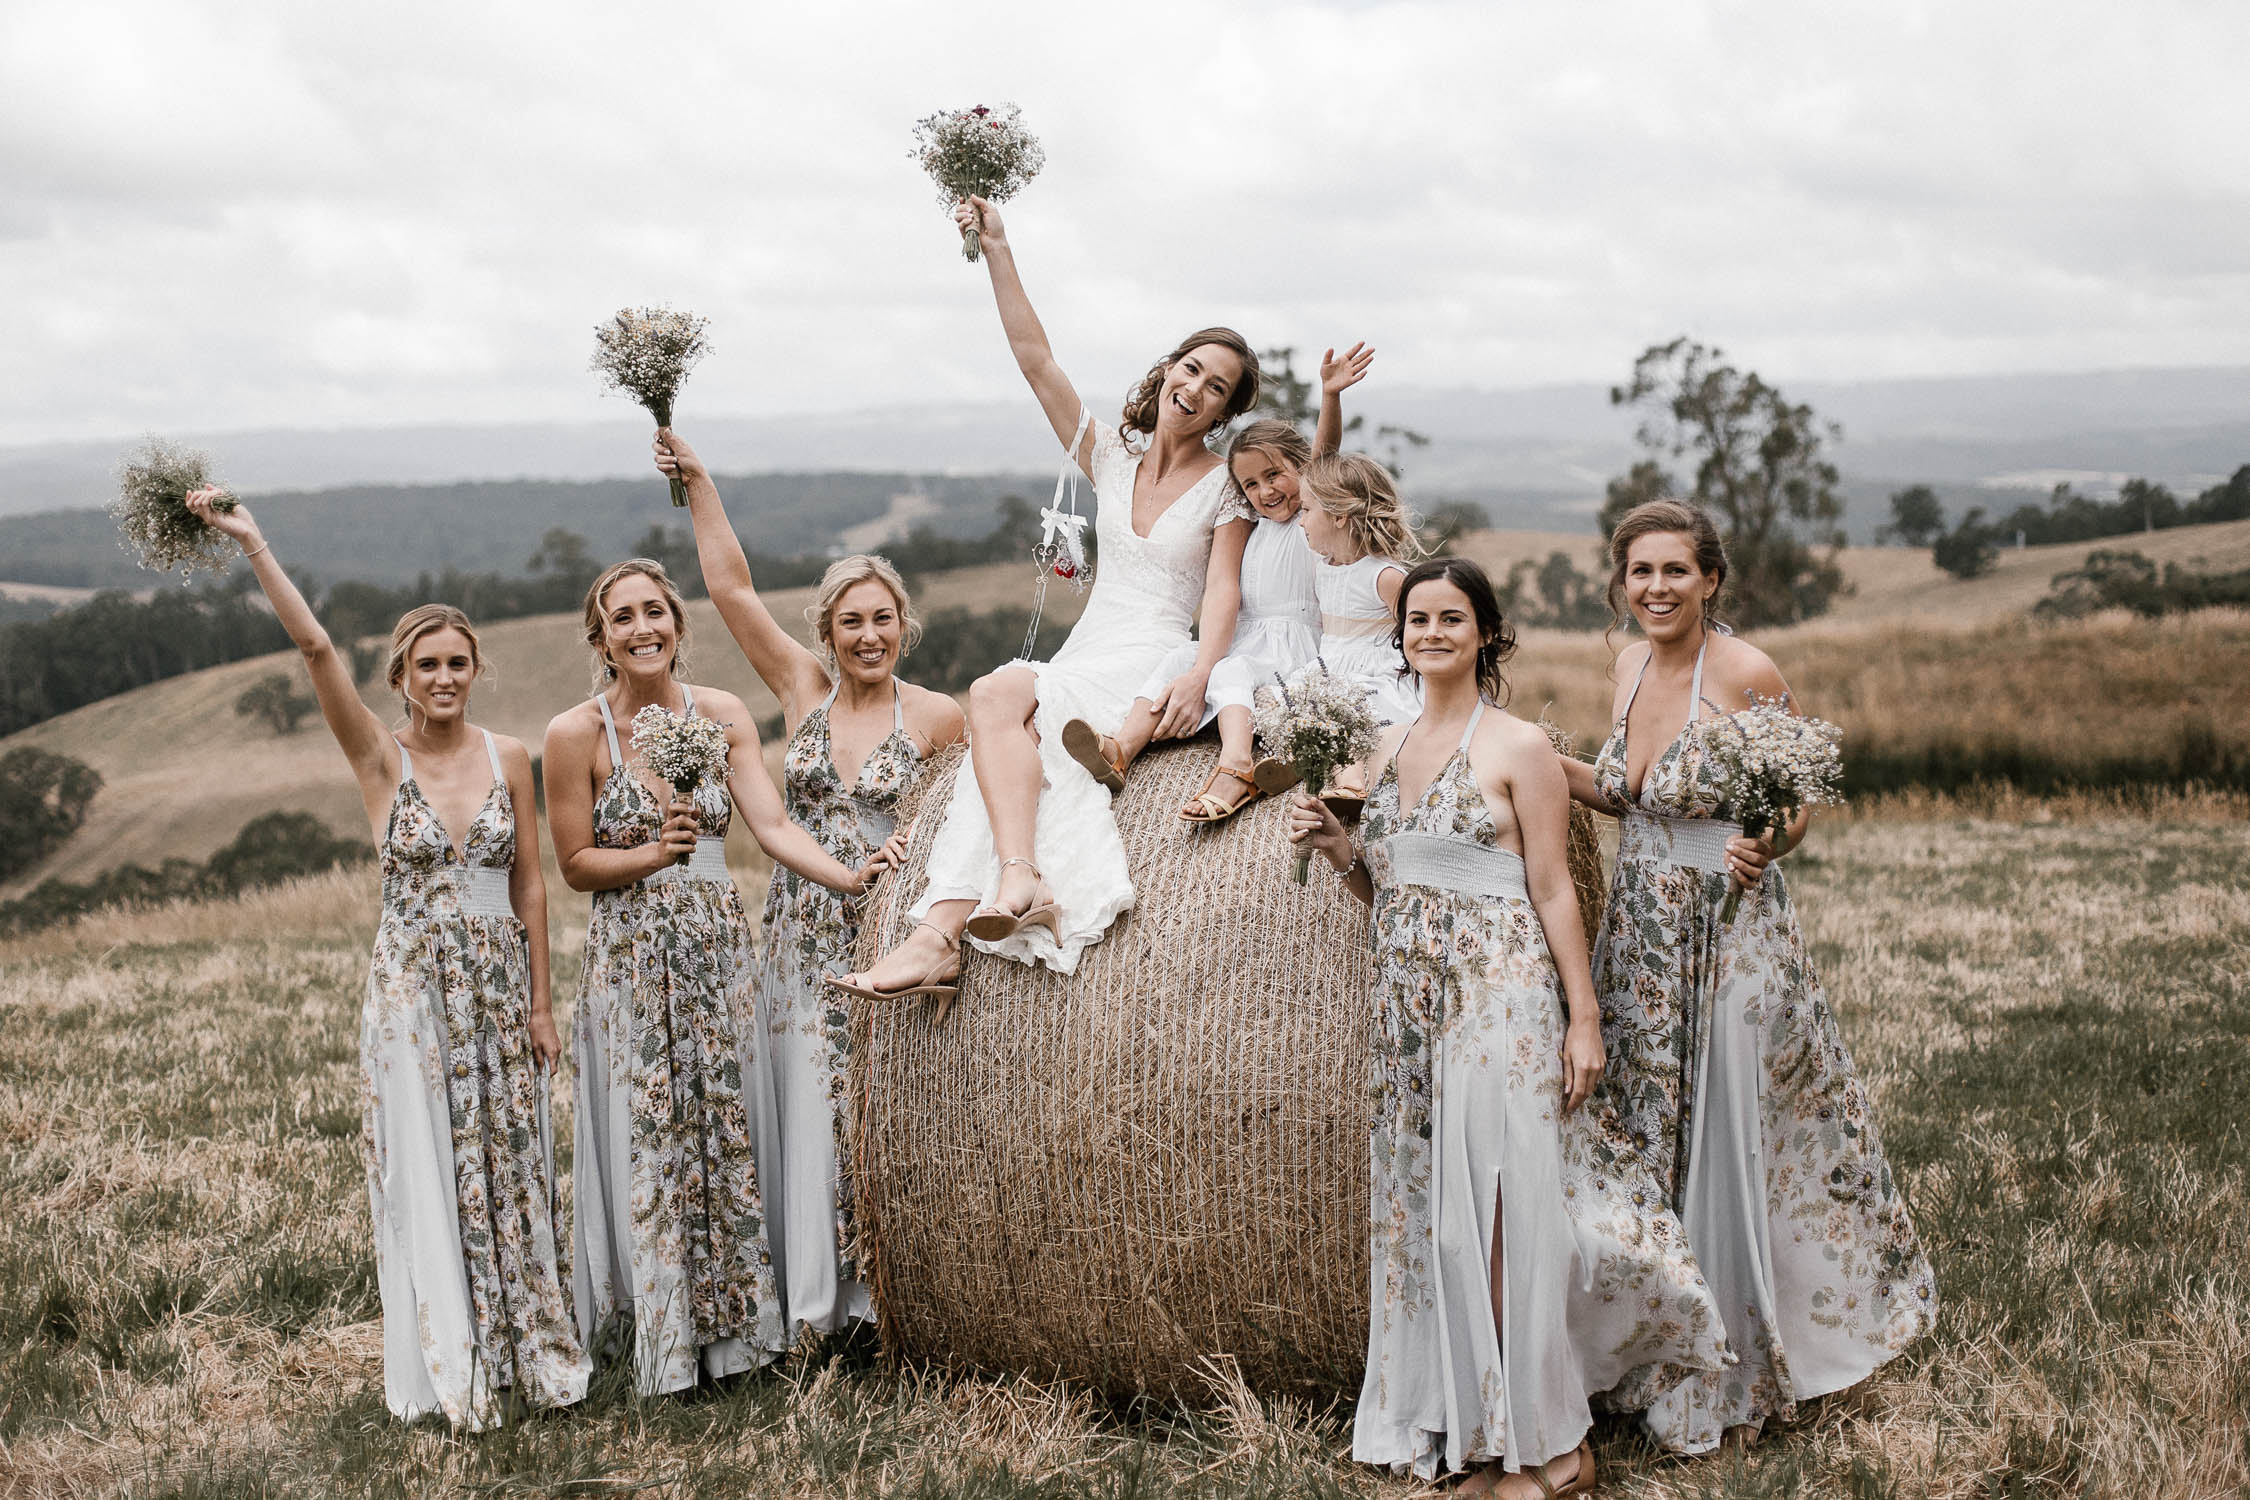 Bridal party with floral pattern dresses and the bride Marlana in Kawarren posing on top of a haystack